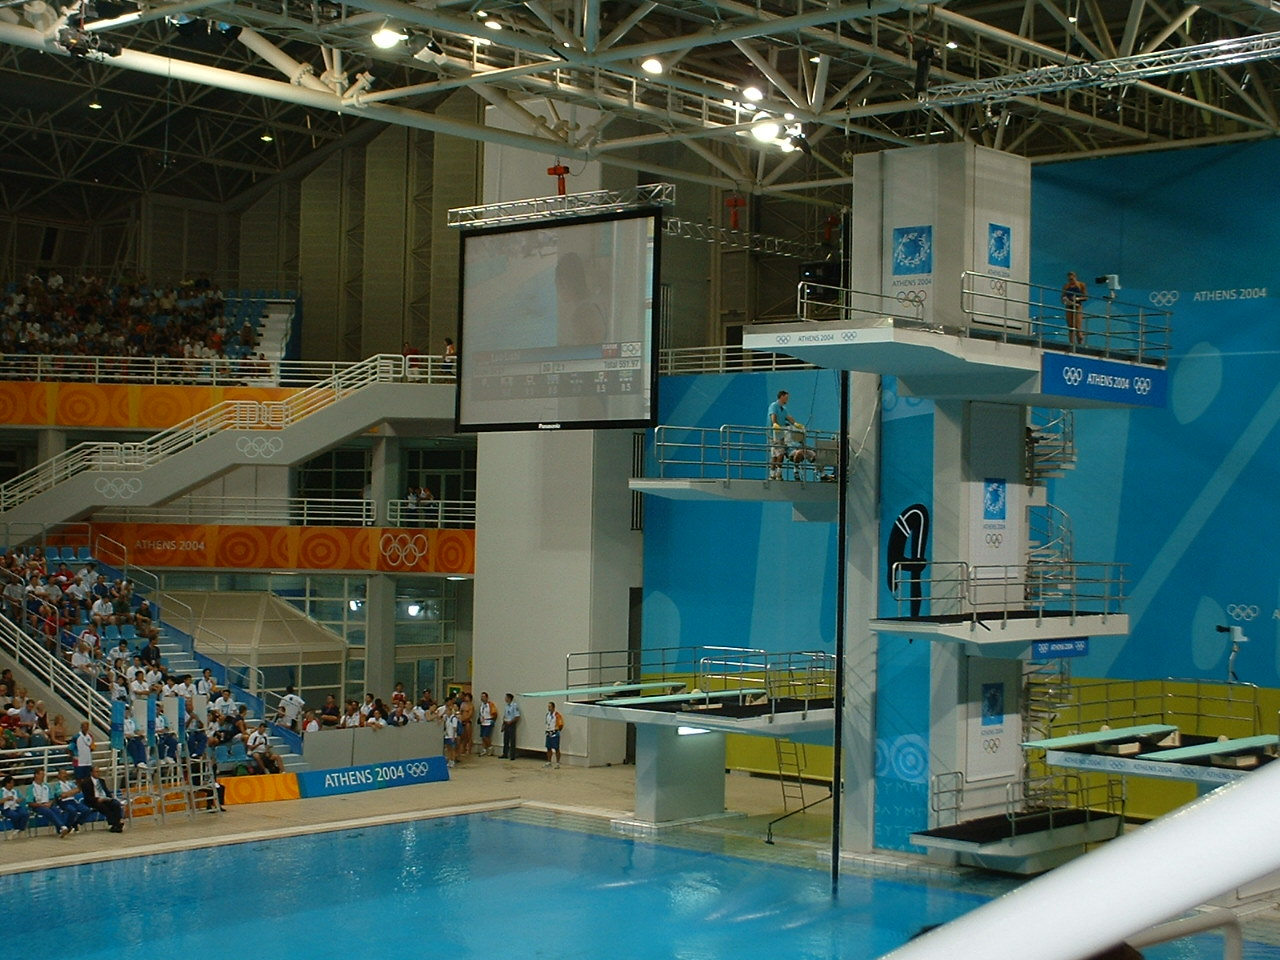 High Diving Board - Viewing Gallery